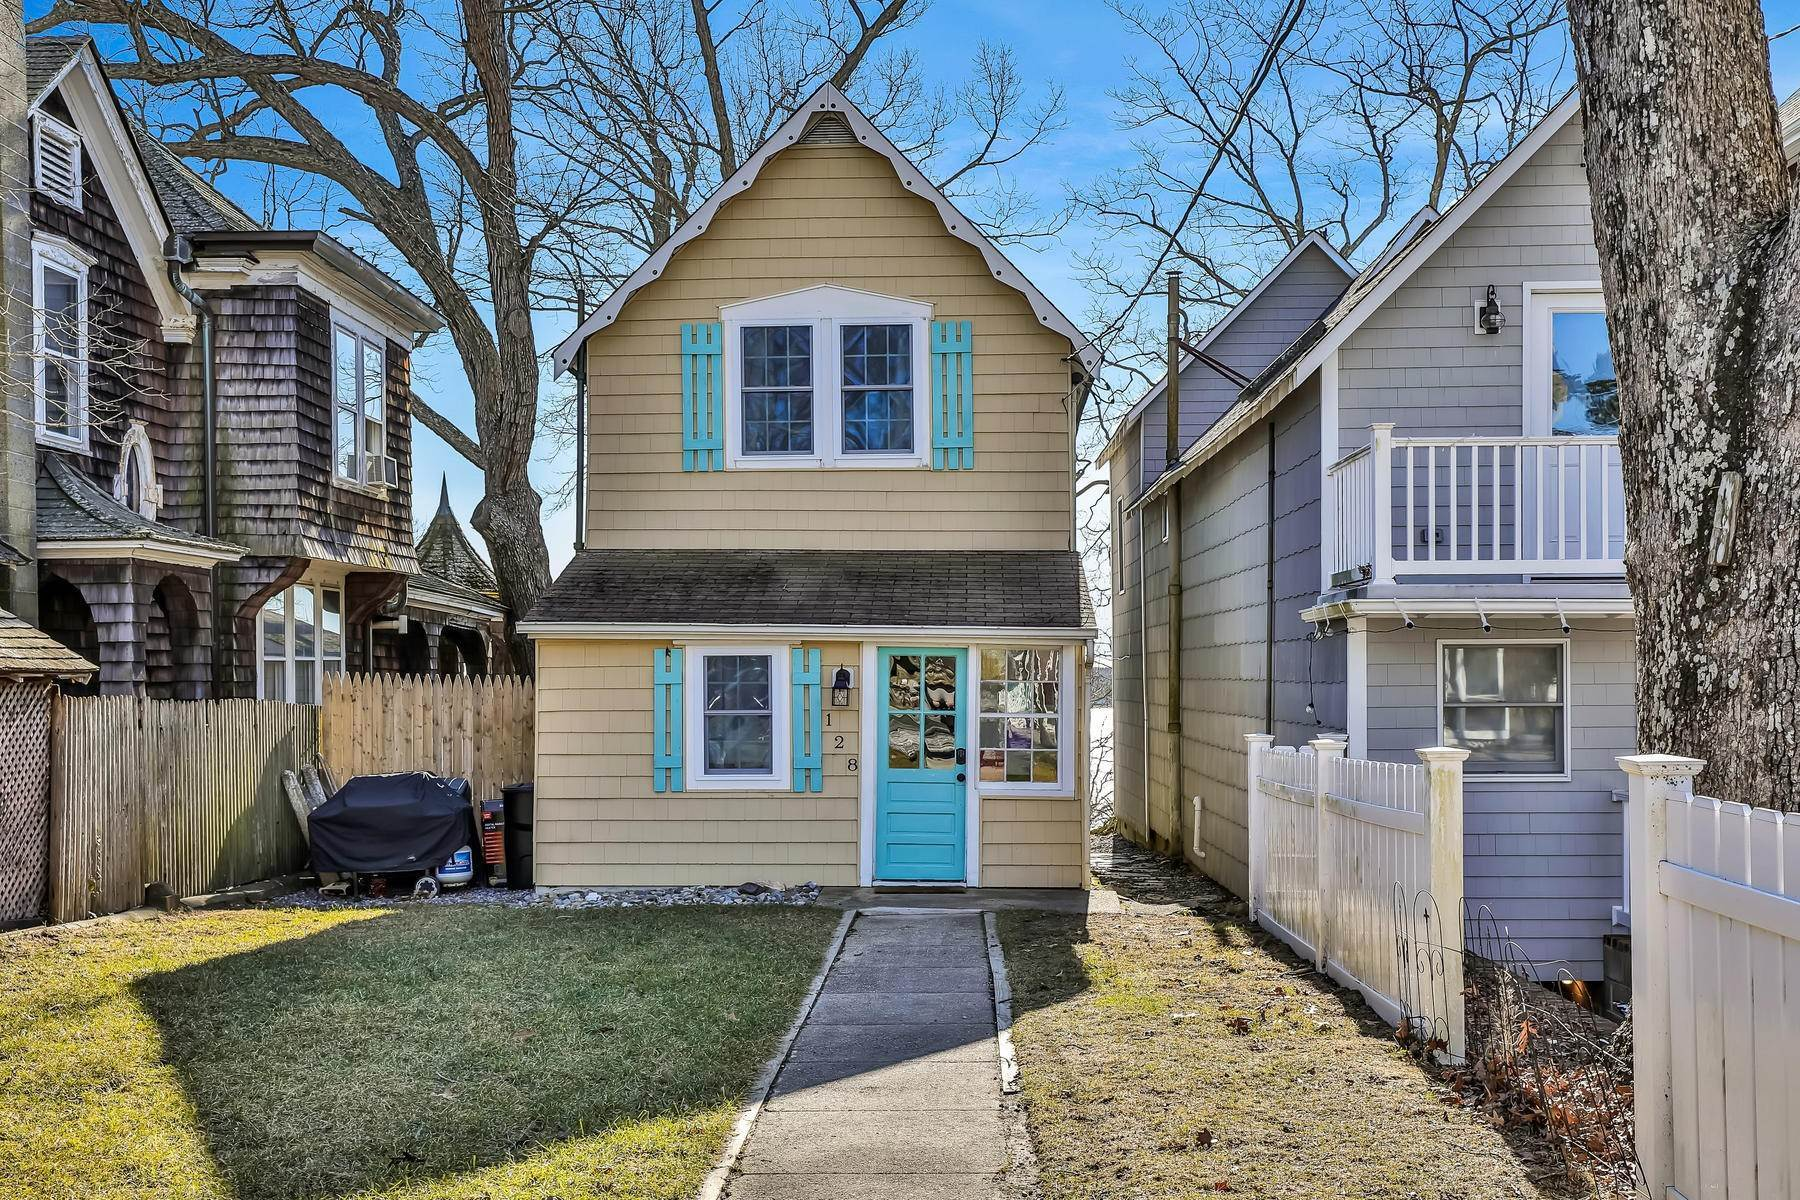 Single Family Homes for Sale at Adorable Riverfront Cottage Style Home 128 E Camp Meeting Avenue Island Heights, New Jersey 08732 United States